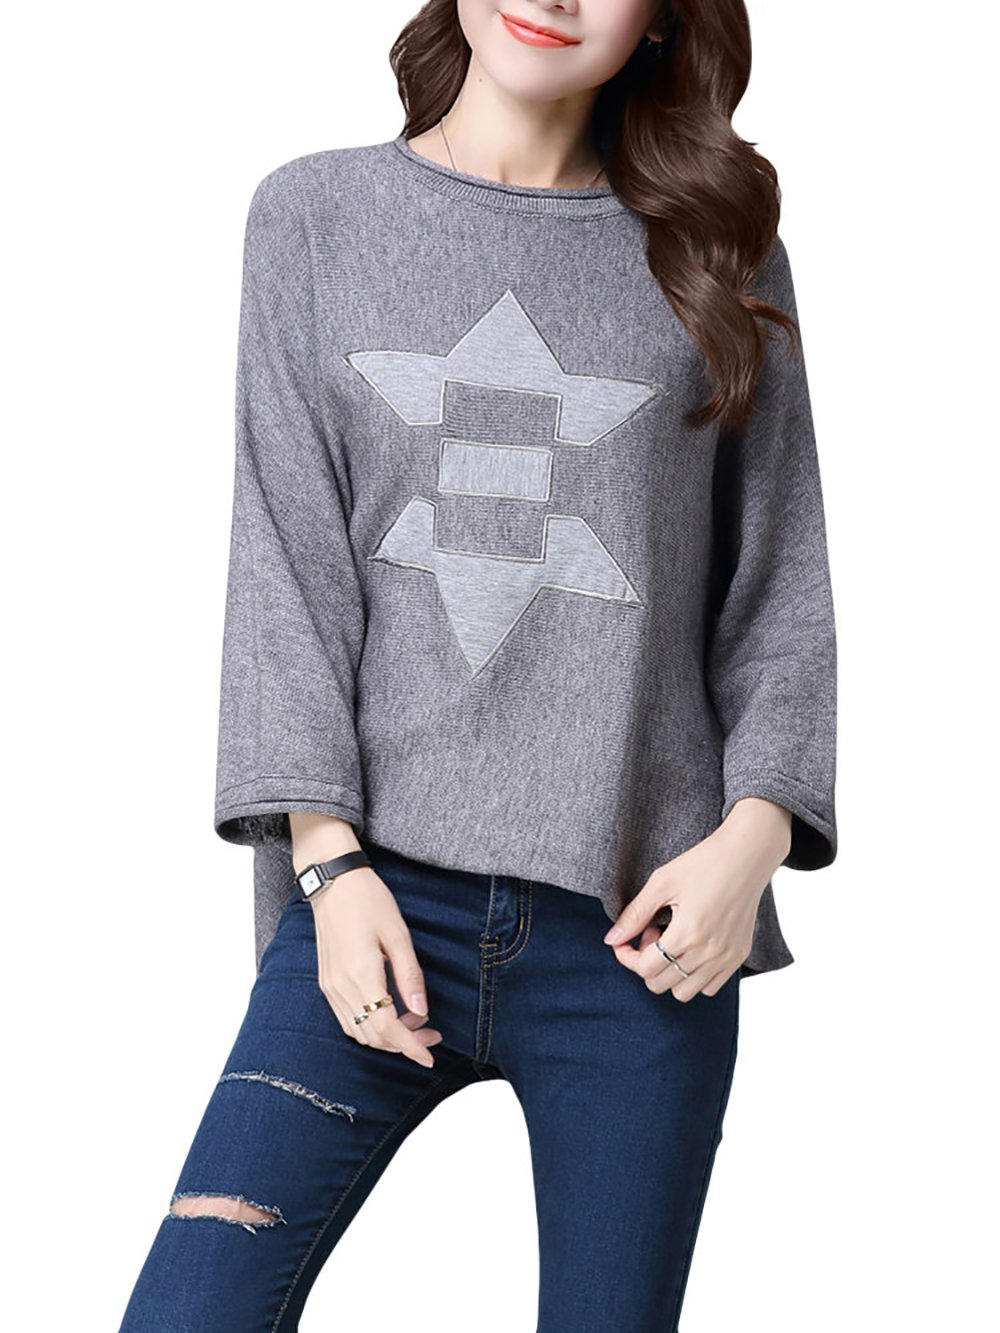 Fabchic Casual Women 3/4 Sleeve Printed Loose Knit Pullover Sweater